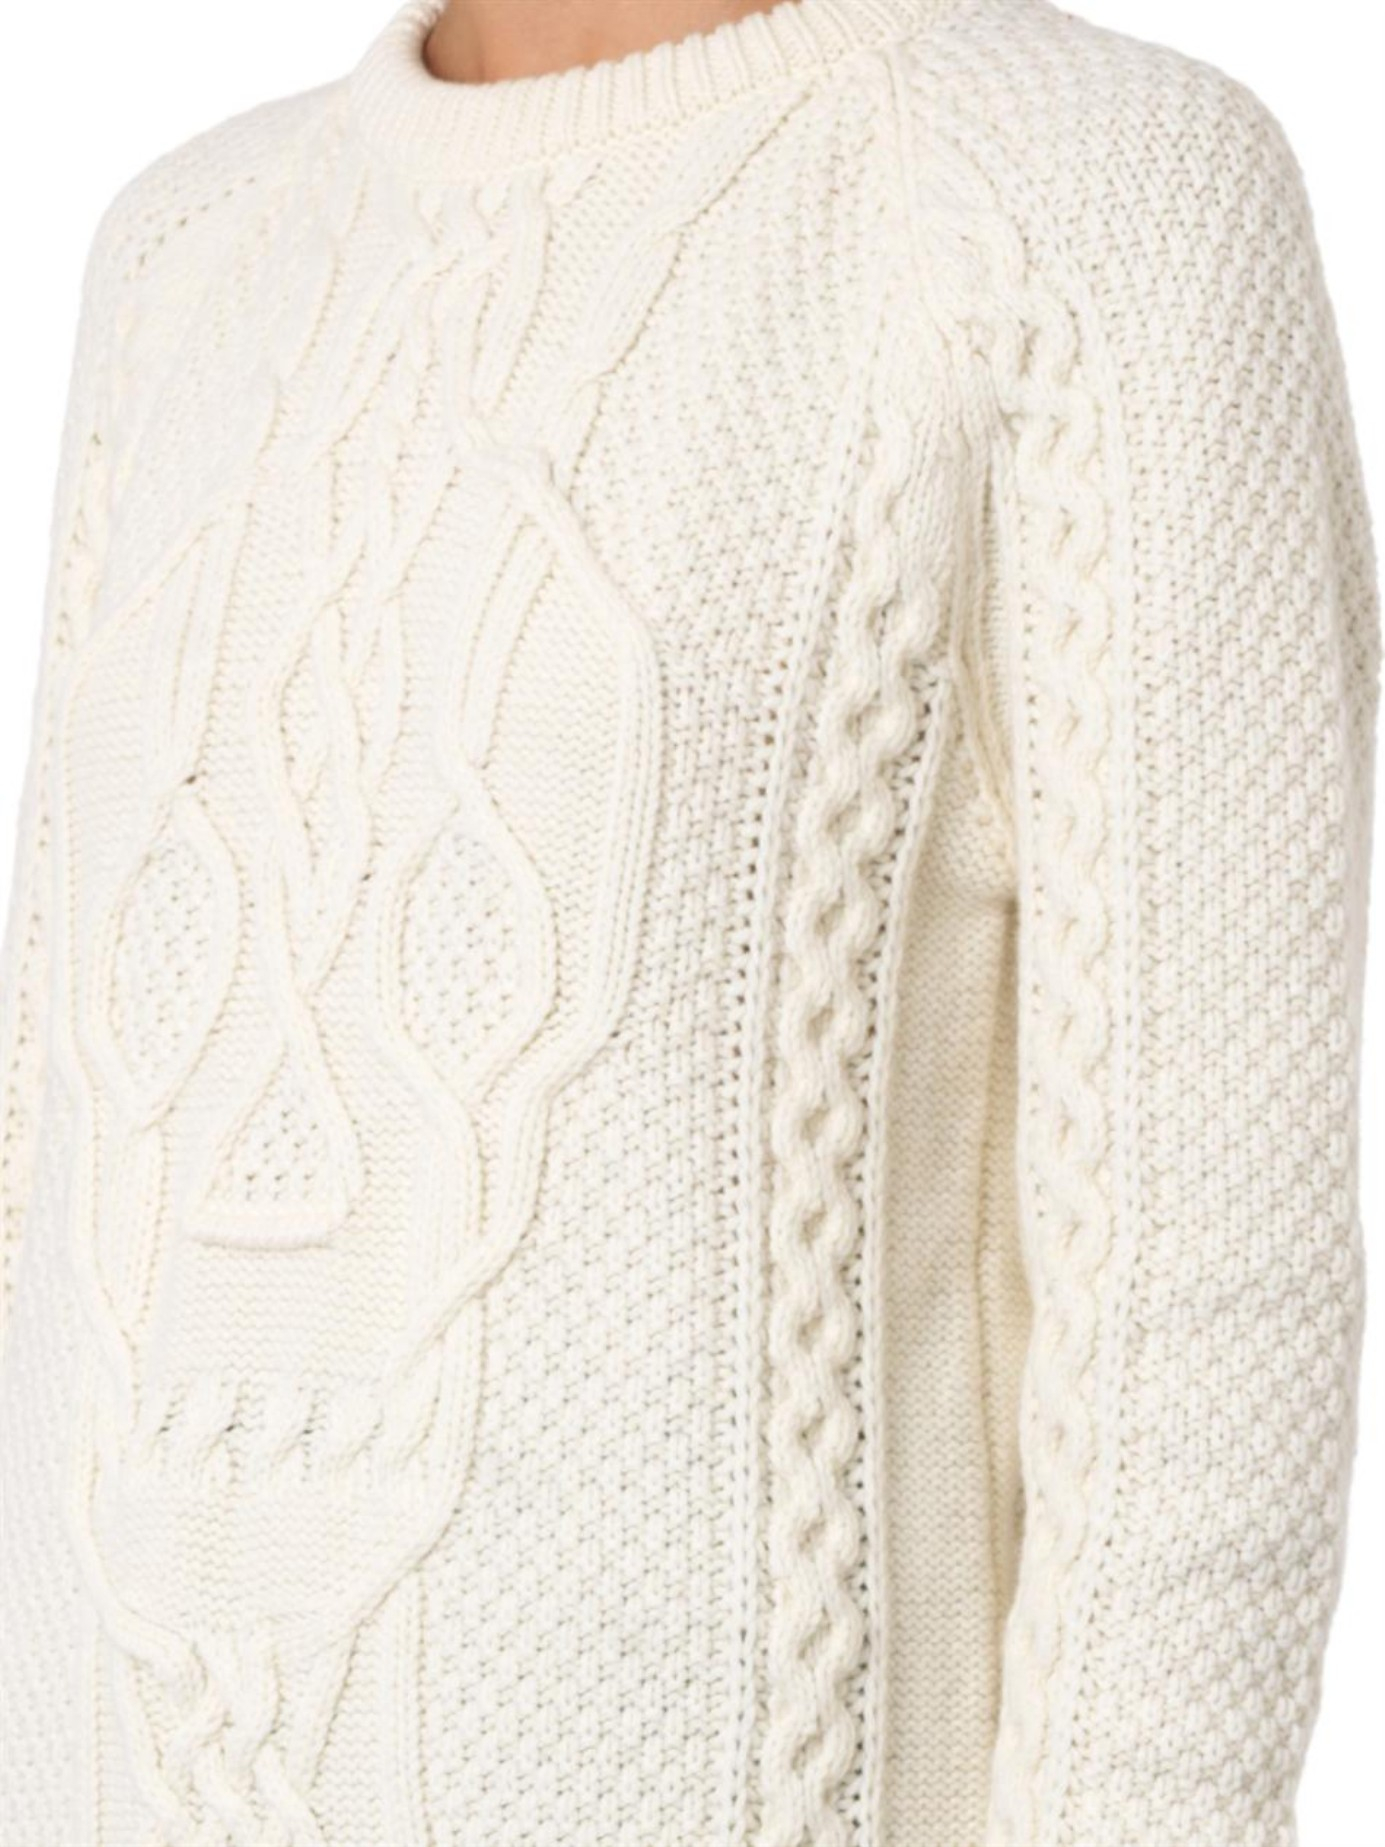 Lyst - Alexander Mcqueen Skull Cable-Knit Sweater in Natural